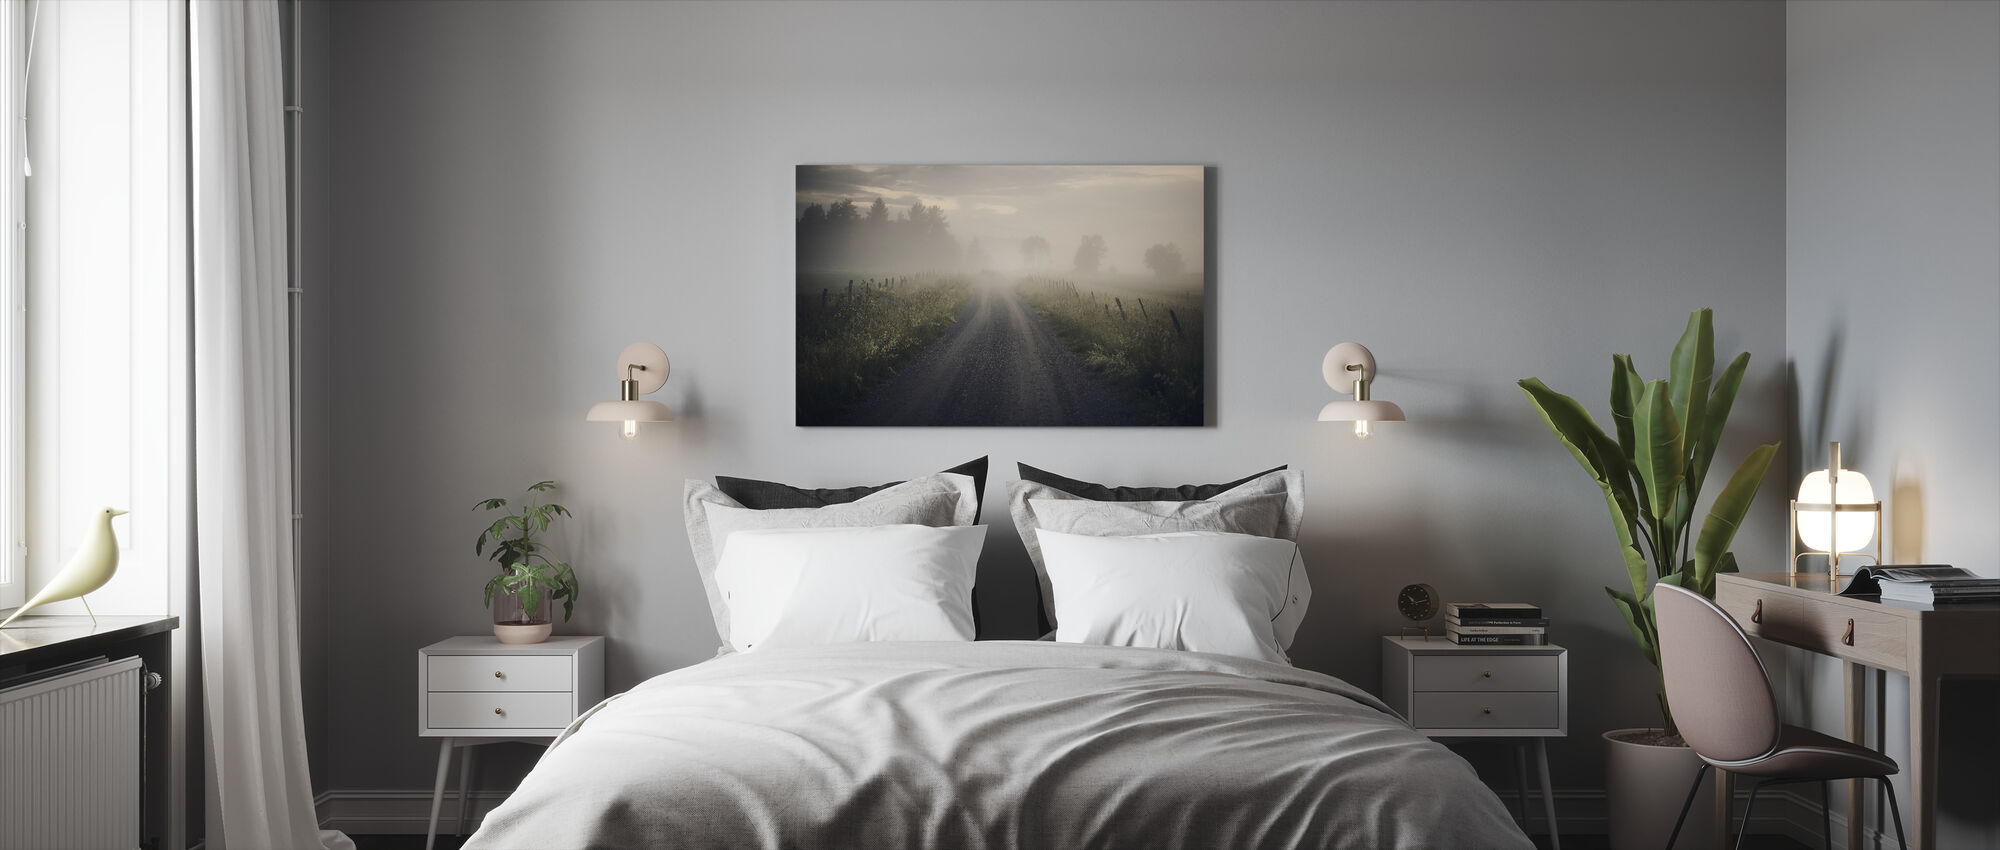 Misty Rural Road - Canvas print - Bedroom